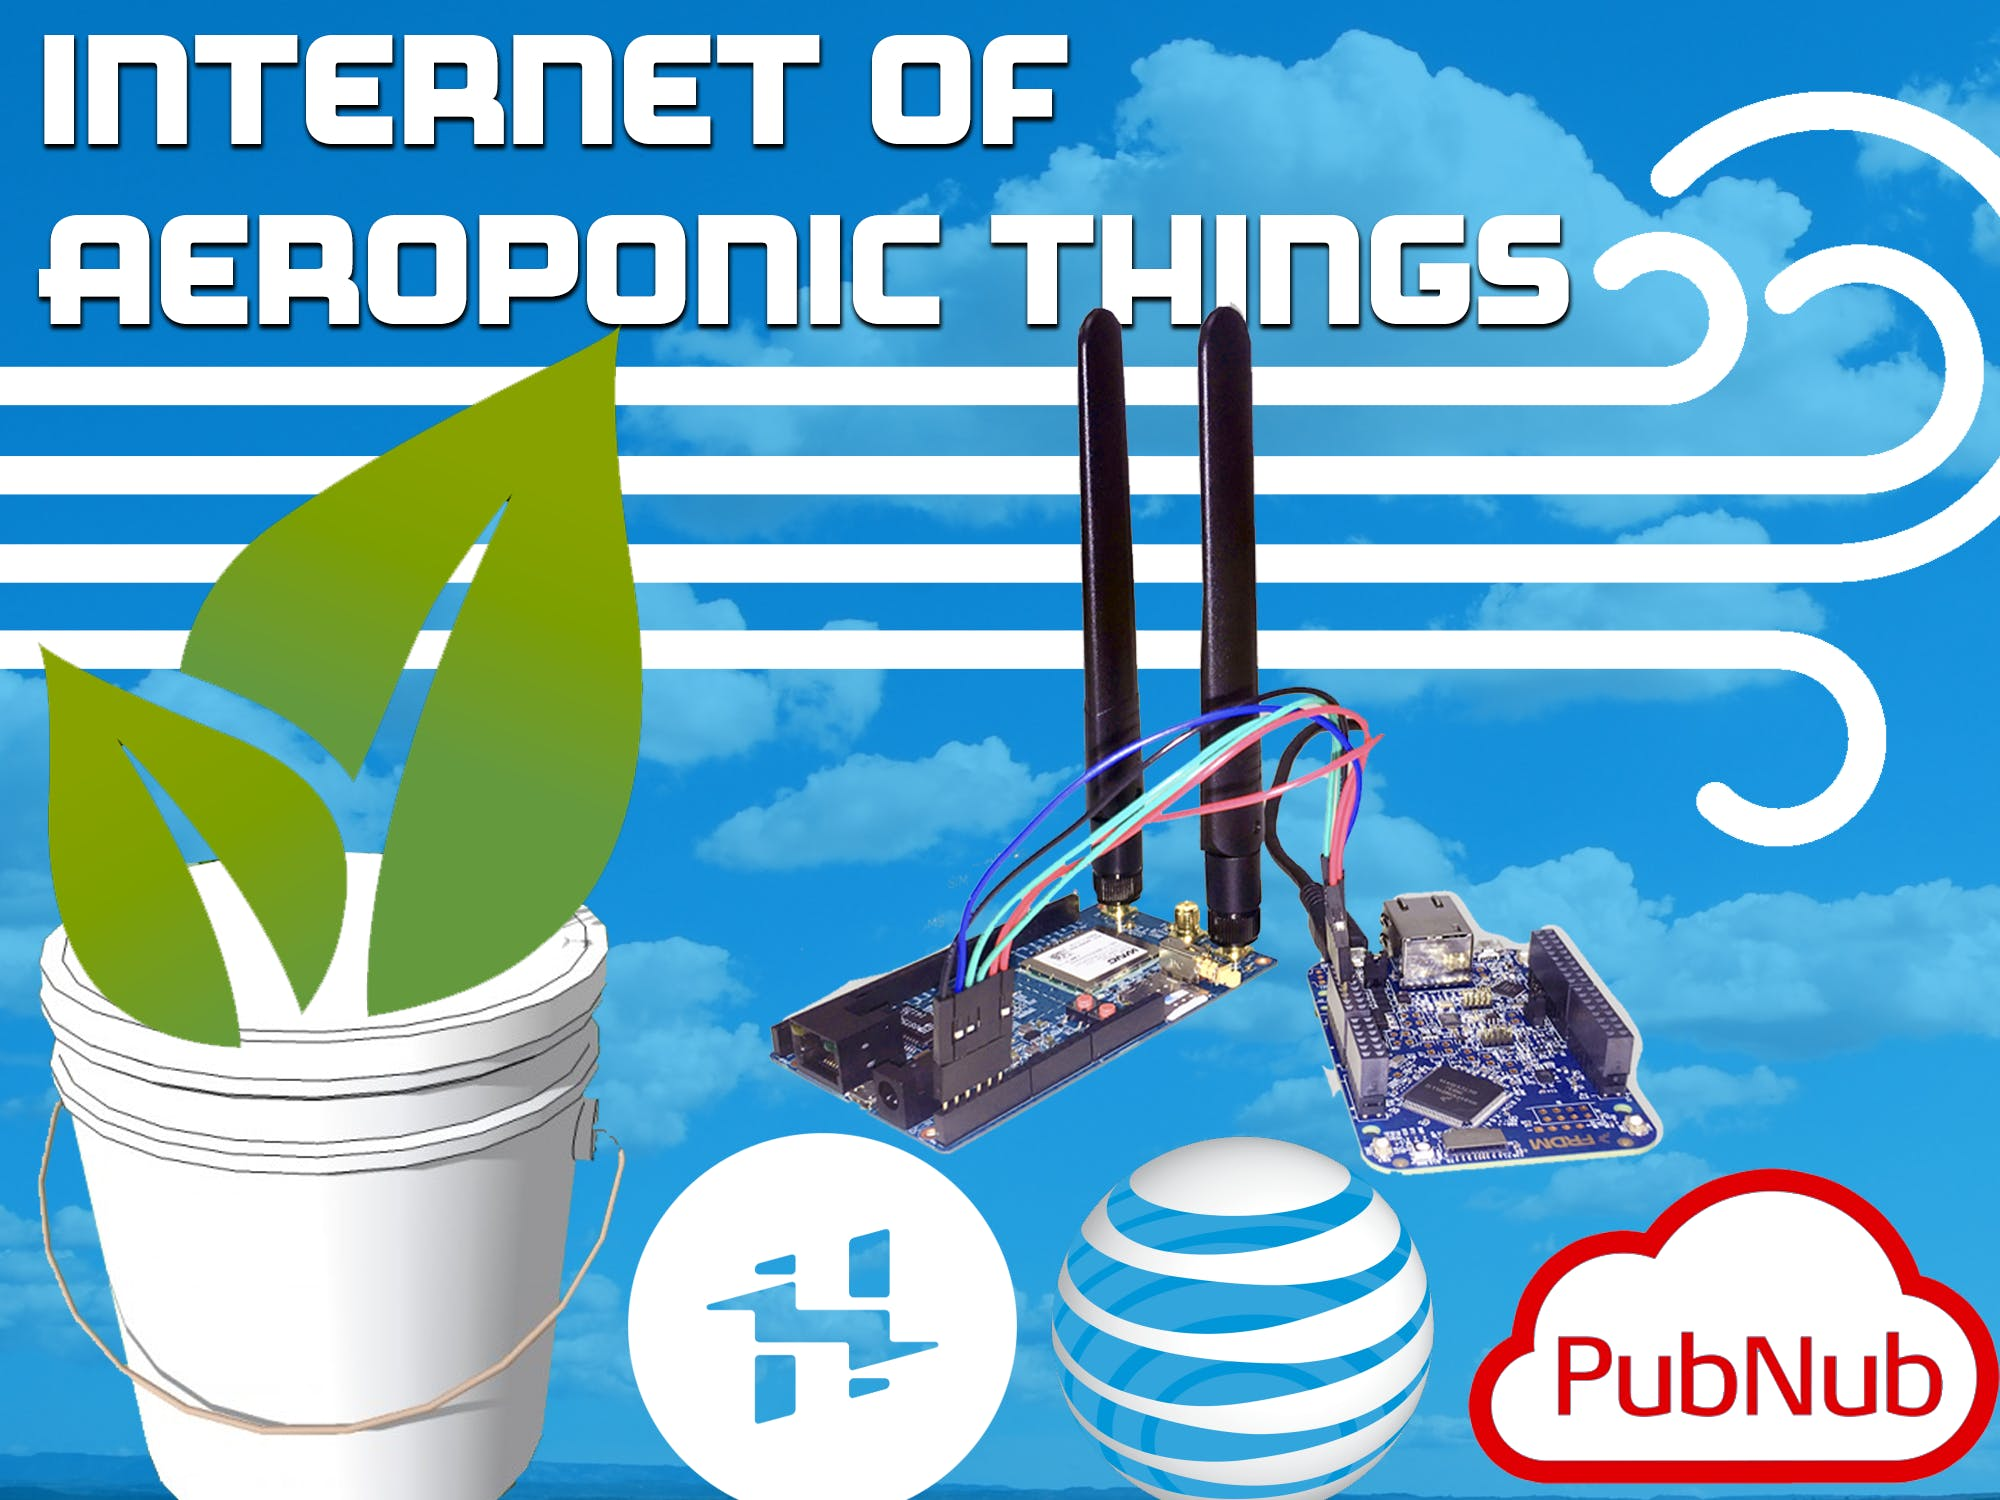 Internet of Aeroponic Things